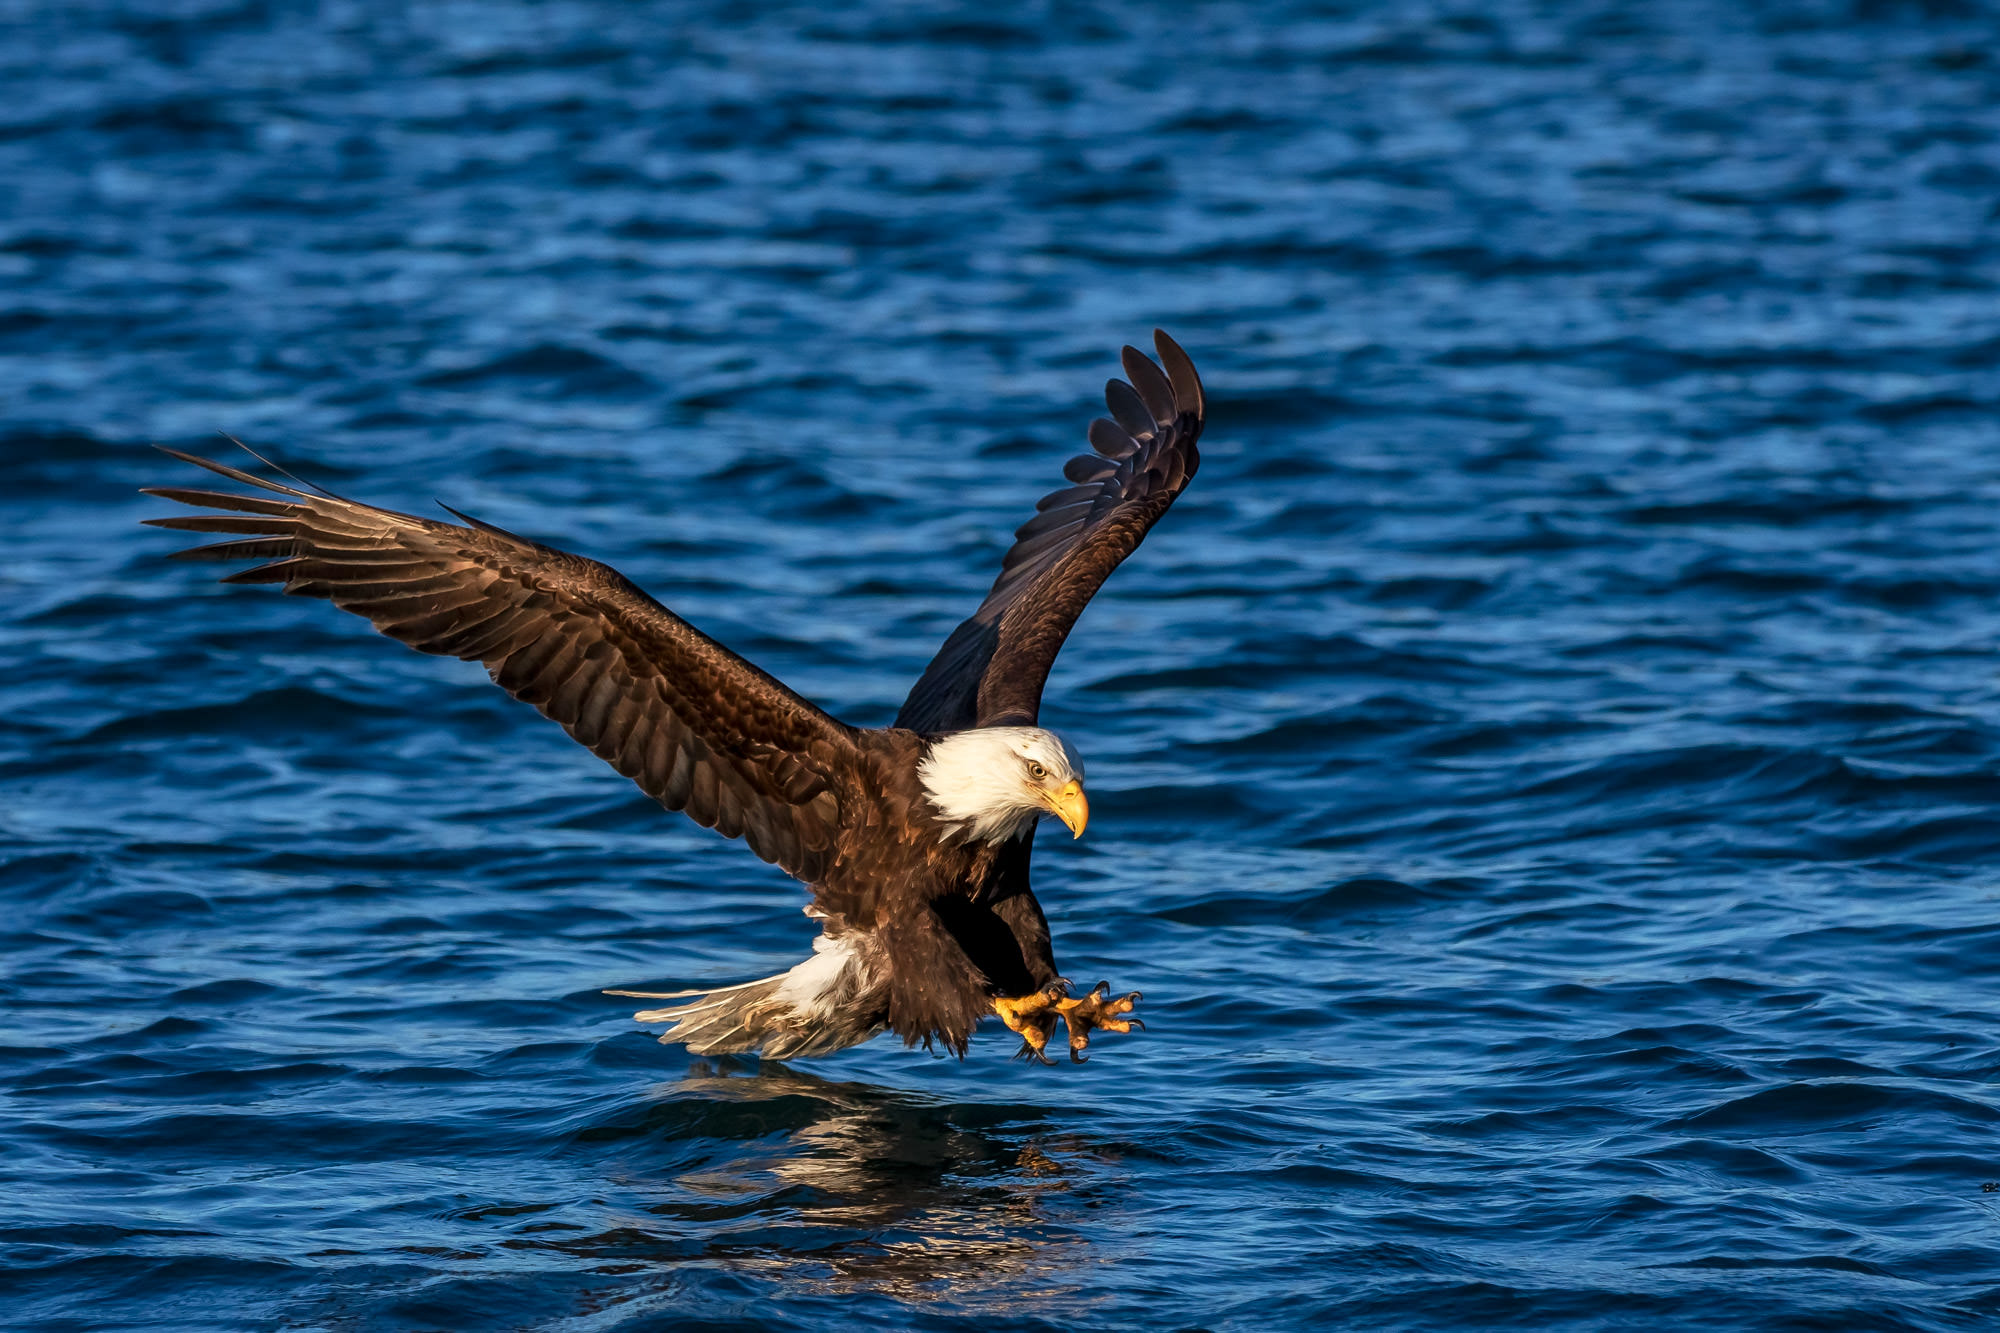 Eagle, Bald Eagle, flight, flying, photo